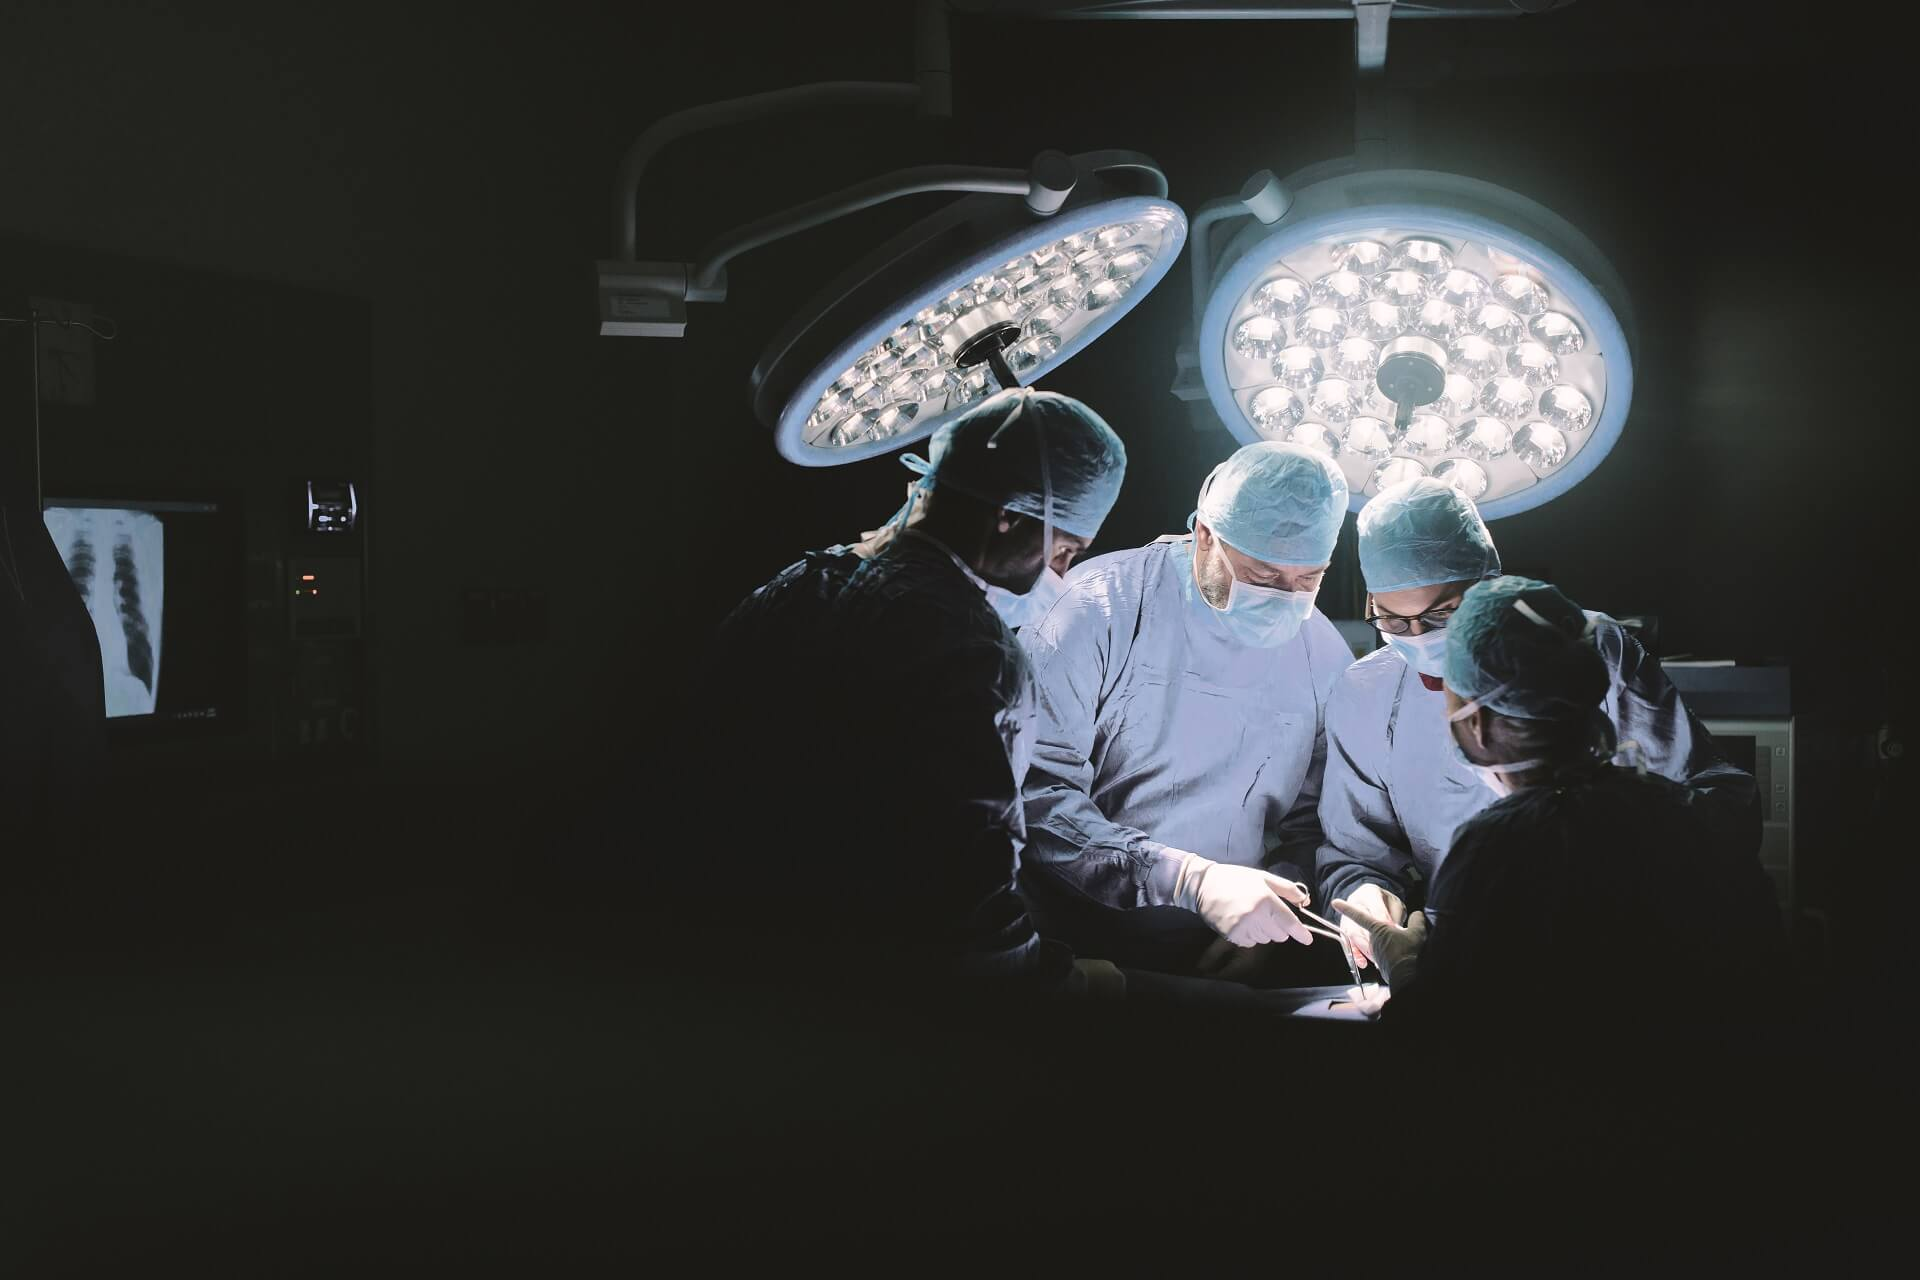 Surgeons operating in theater